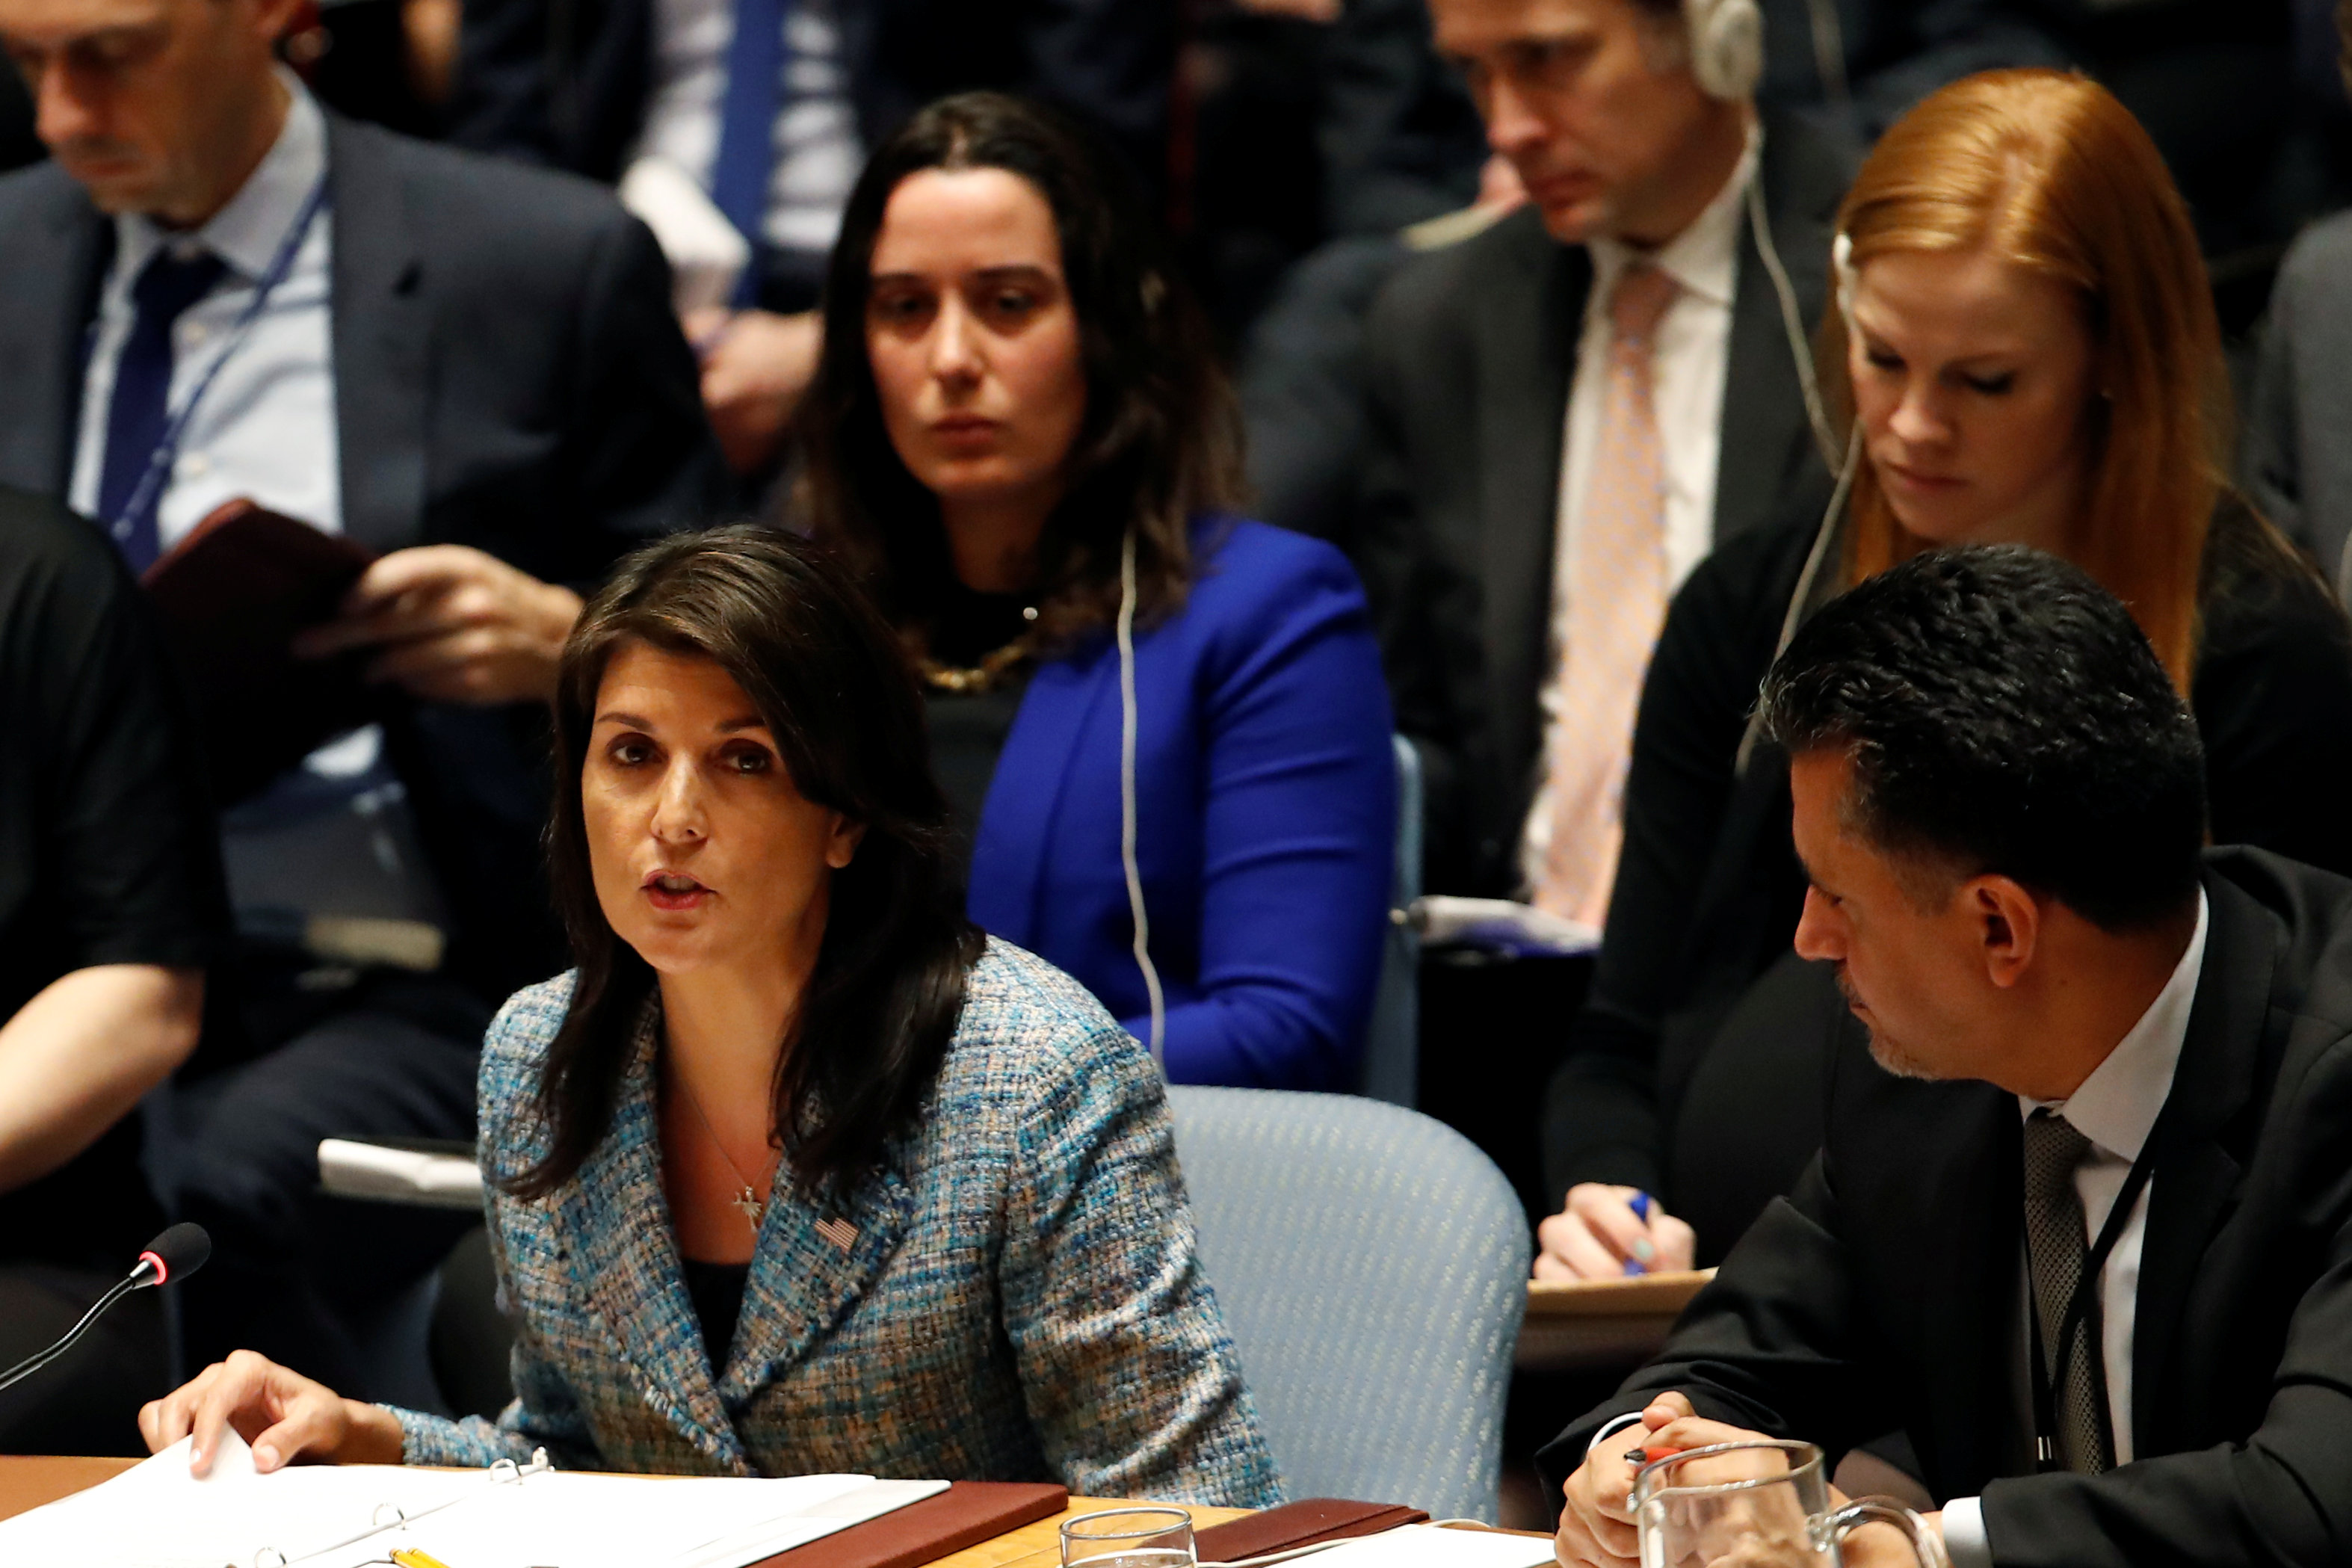 United States Ambassador to the United Nations Nikki Haley addresses the U.N. Security Council on Syria during a meeting of the Council at U.N. headquarters in New York, U.S., March 12, 2018. REUTERS/Mike Segar